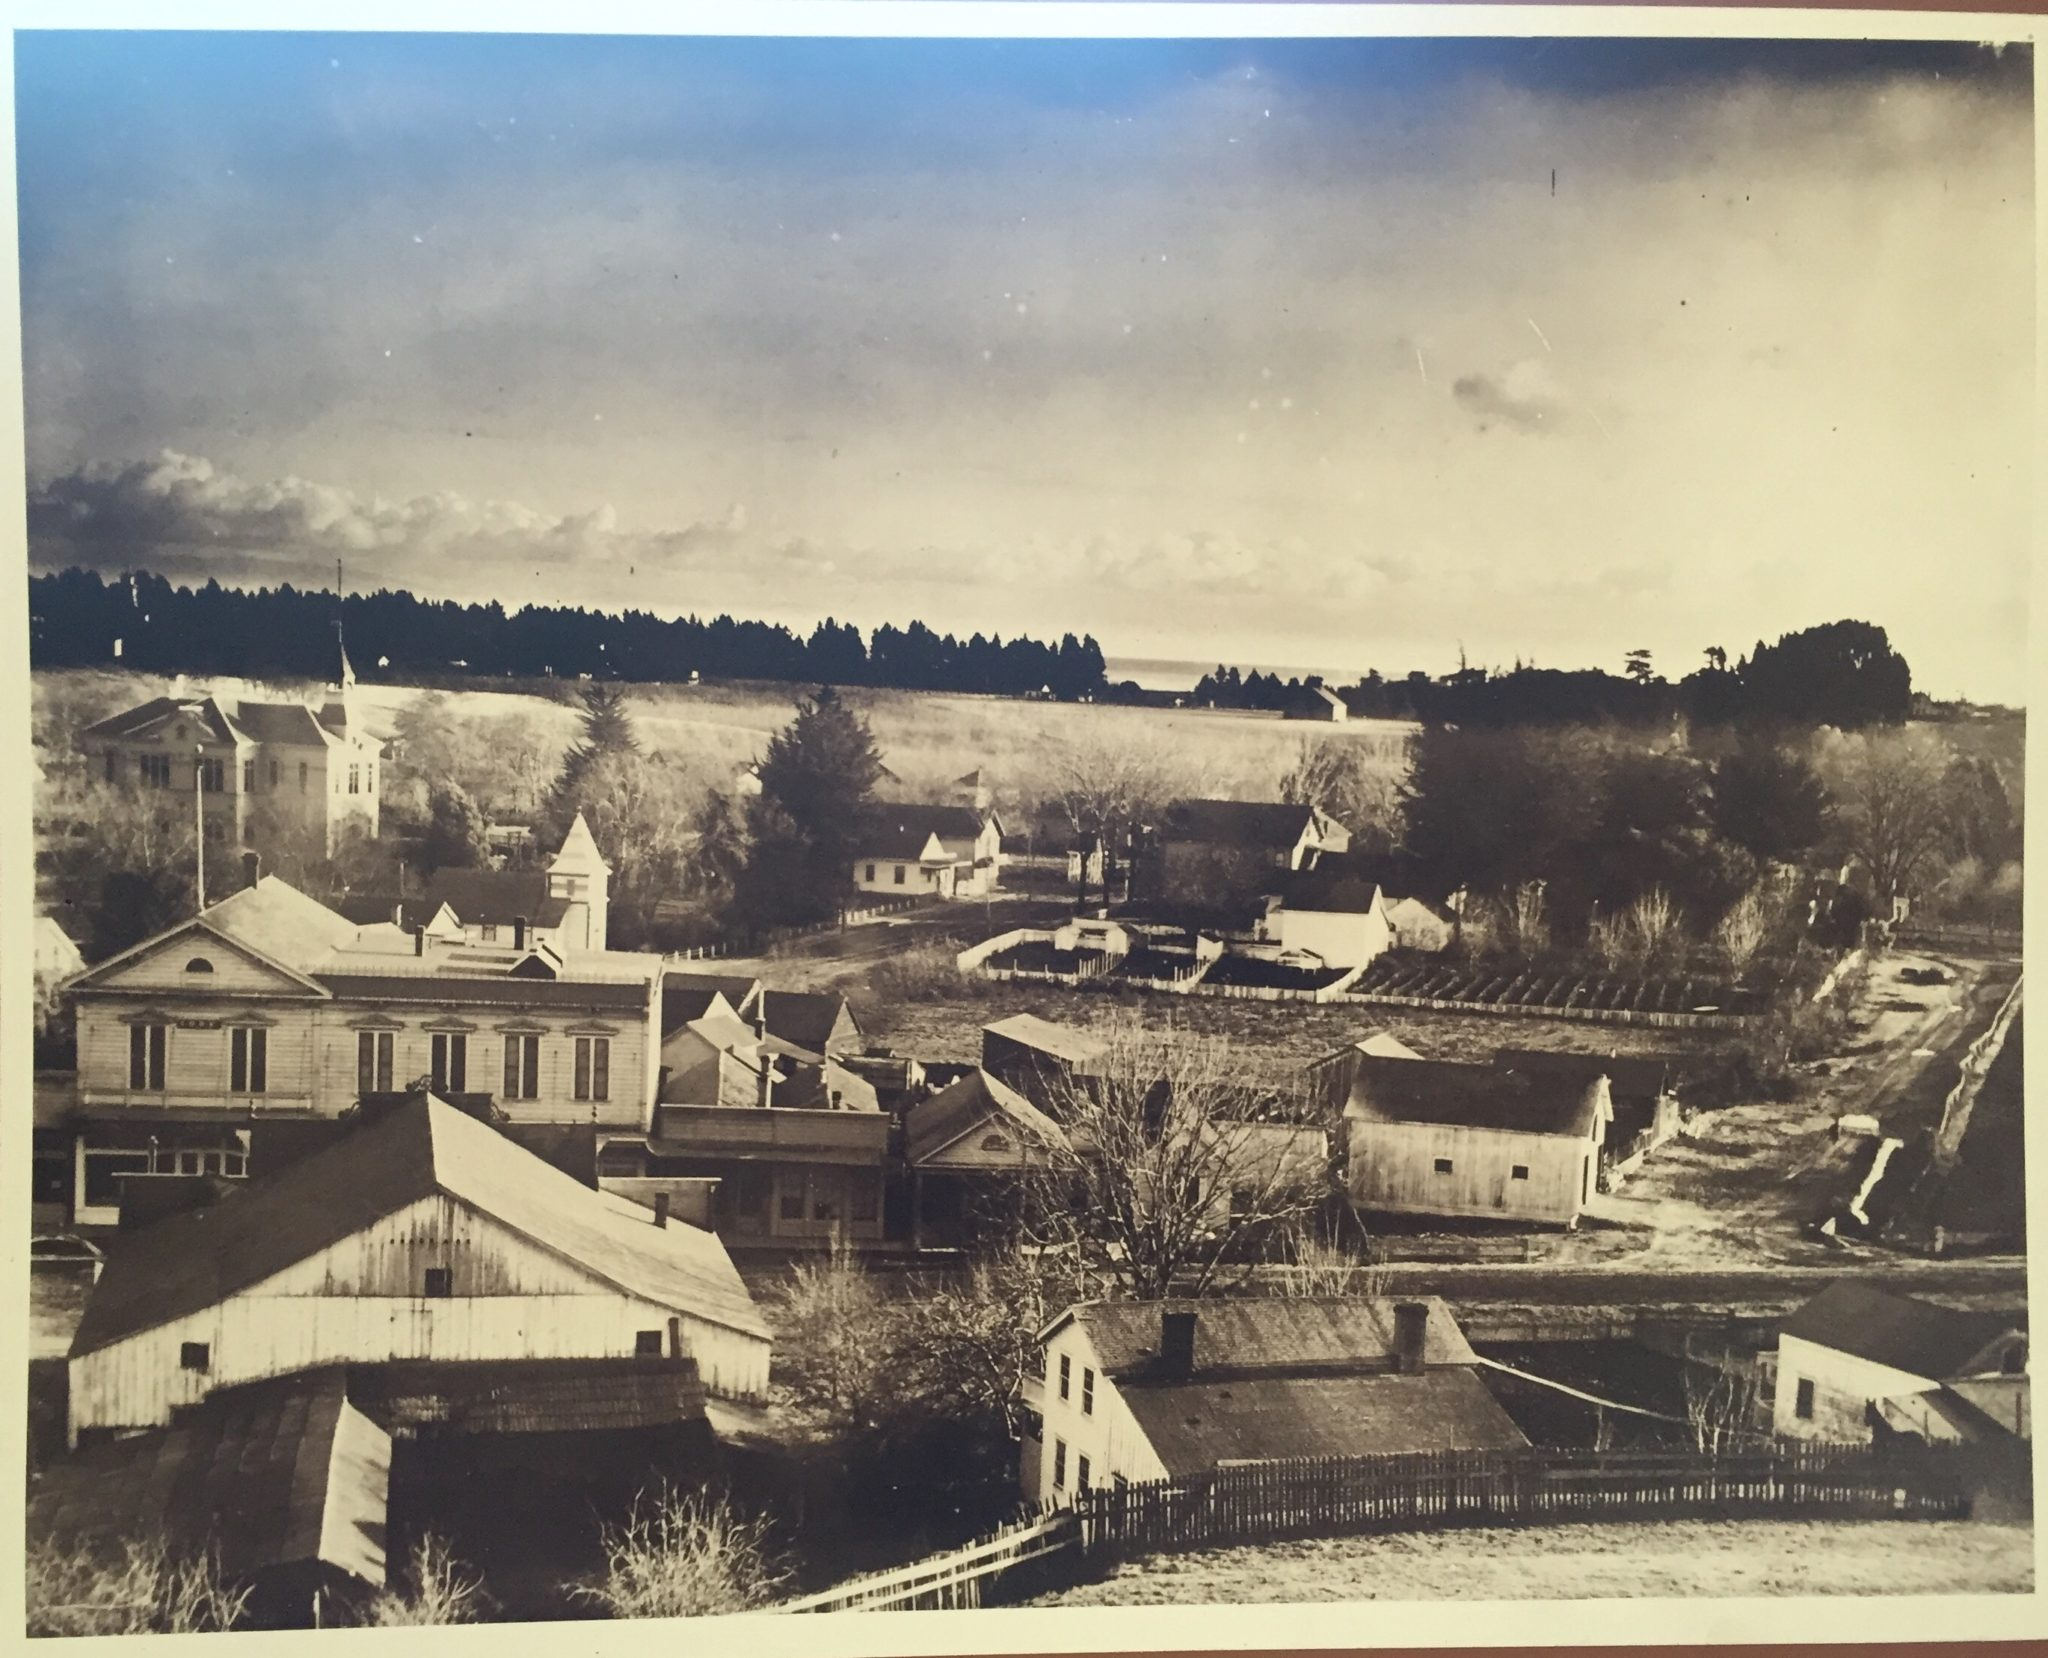 Soquel with the Monterey Bay in the distance, 1900.